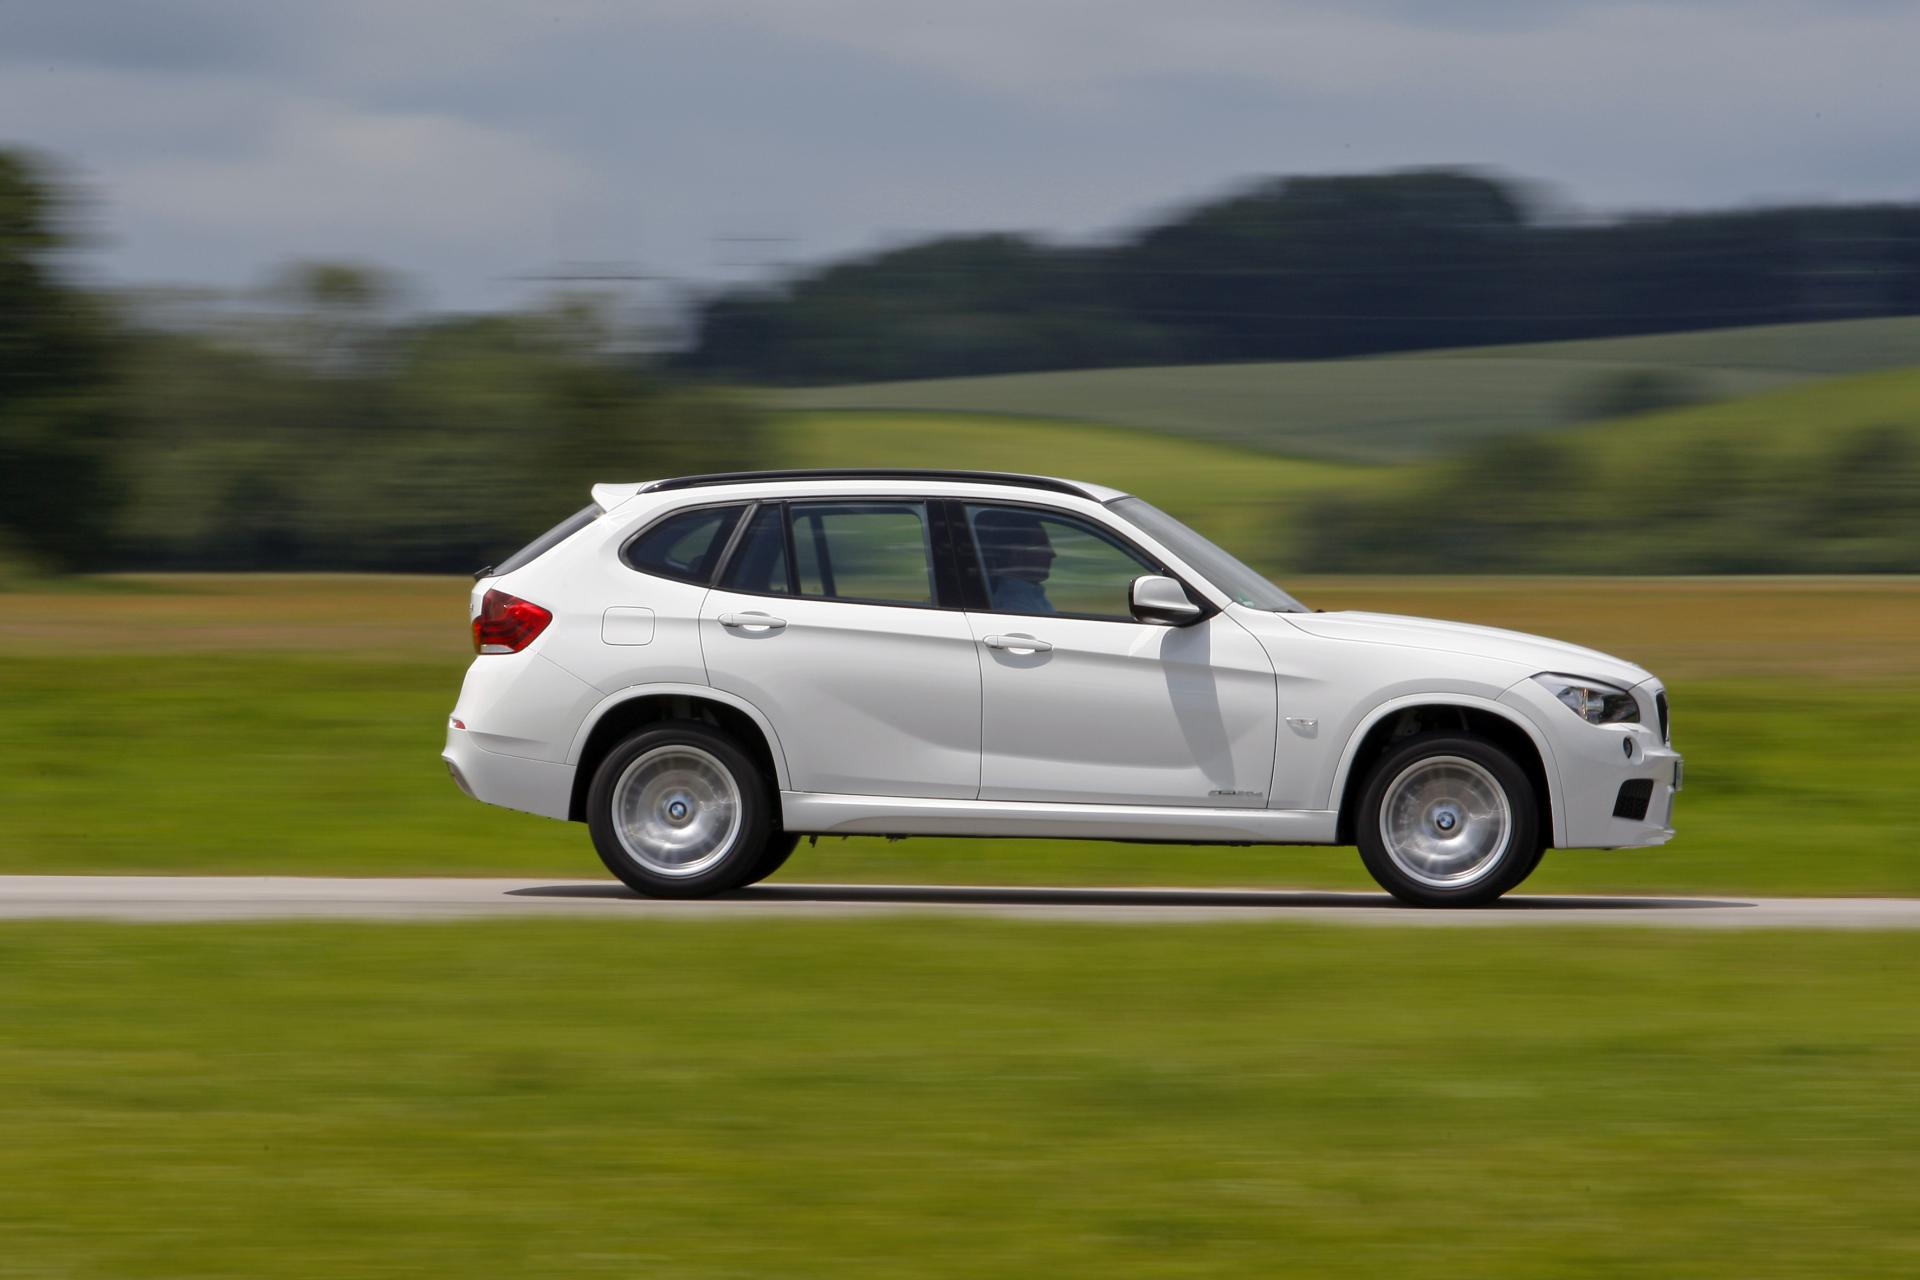 2012 bmw x1 technical specifications and data engine. Black Bedroom Furniture Sets. Home Design Ideas